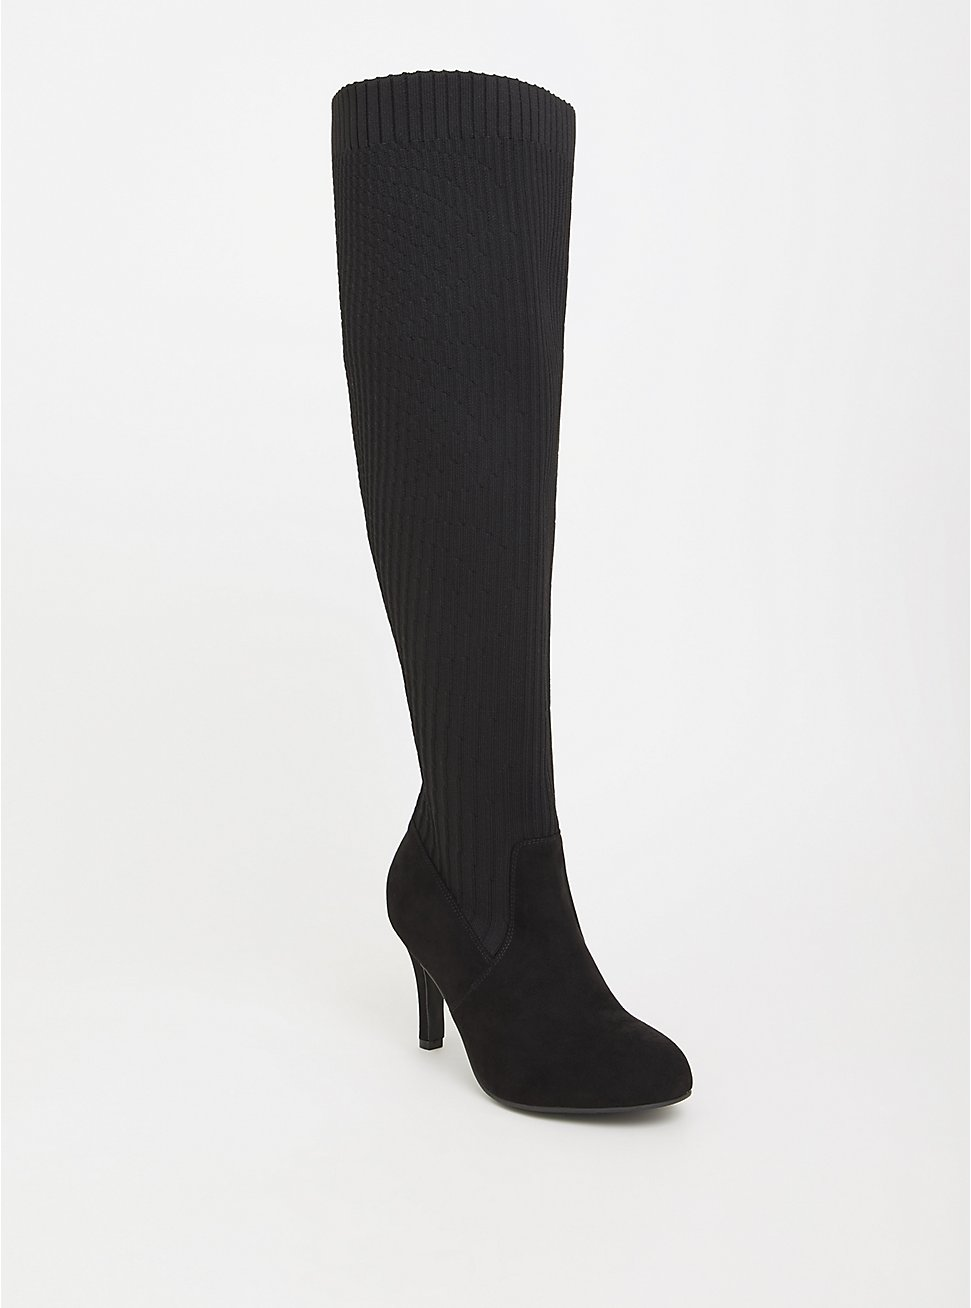 Plus Size Black Sock-Knit Over The Knee Boot (WW & Wide Calf), BLACK, hi-res